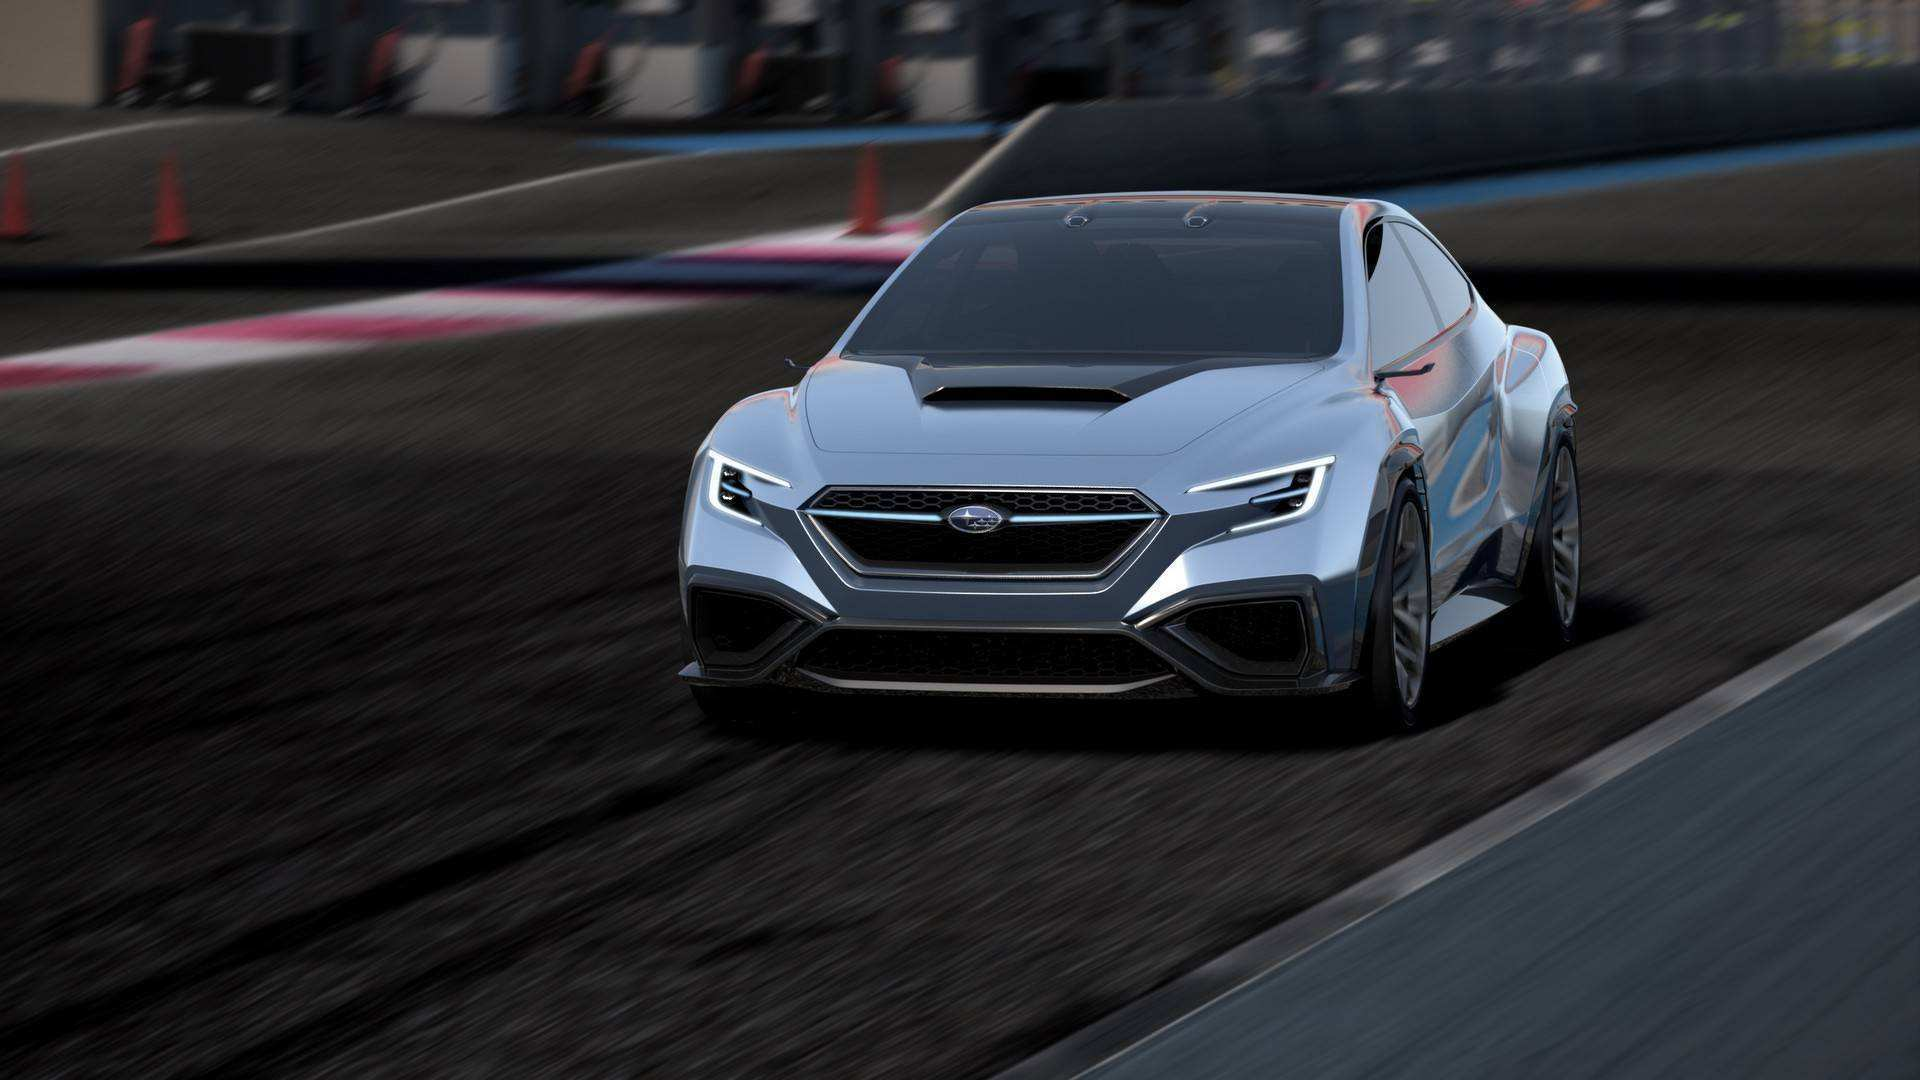 93 New 2020 Subaru Sti Rumors Reviews for 2020 Subaru Sti Rumors